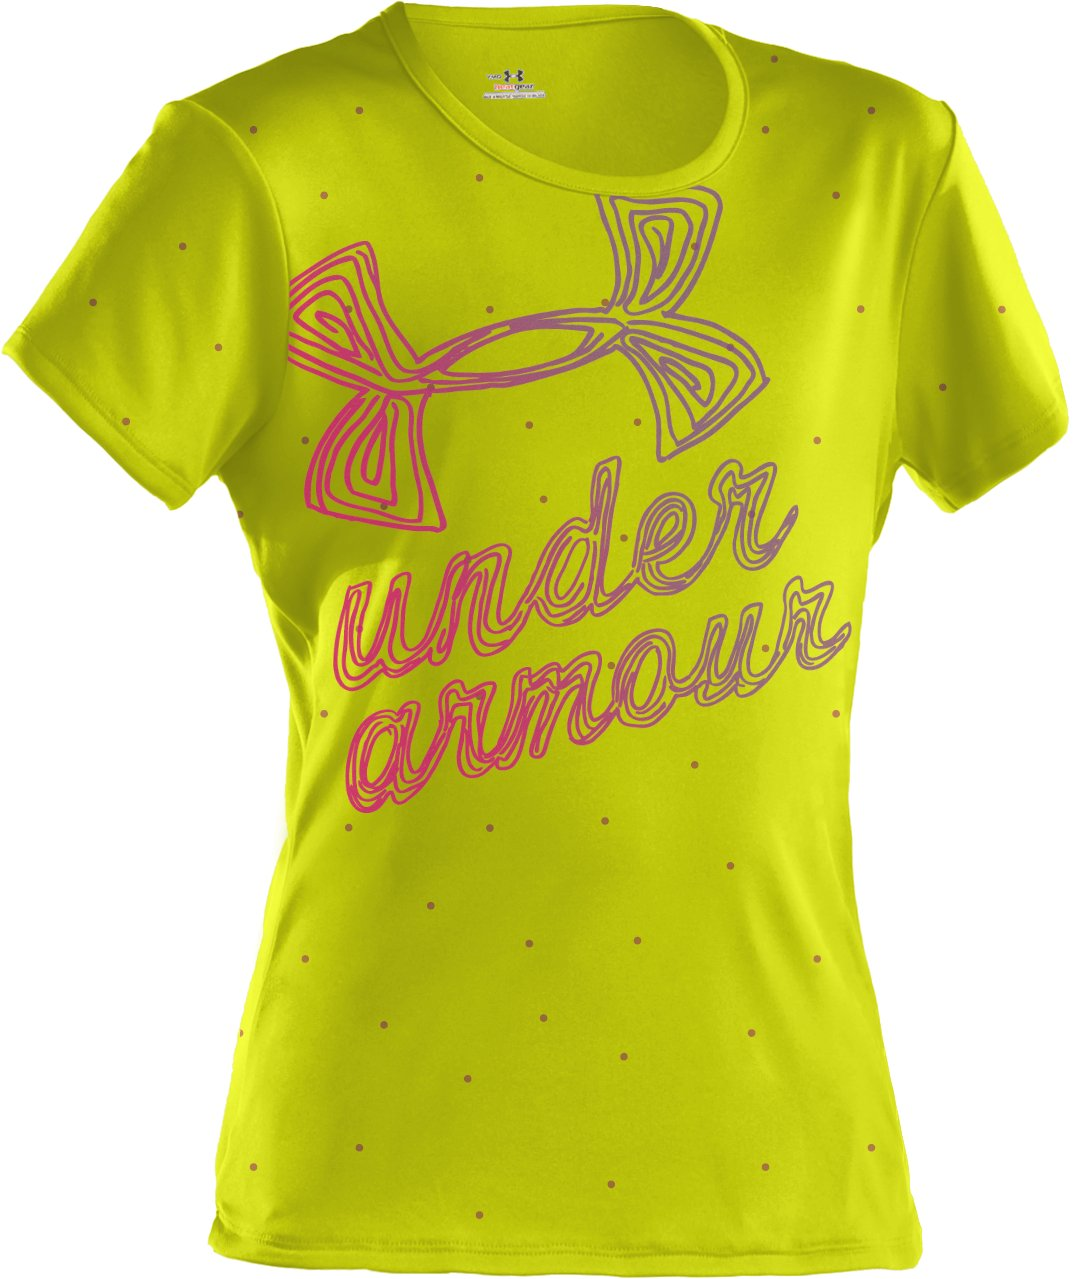 Girls' UA Speckle Script Graphic T-Shirt, High-Vis Yellow, zoomed image